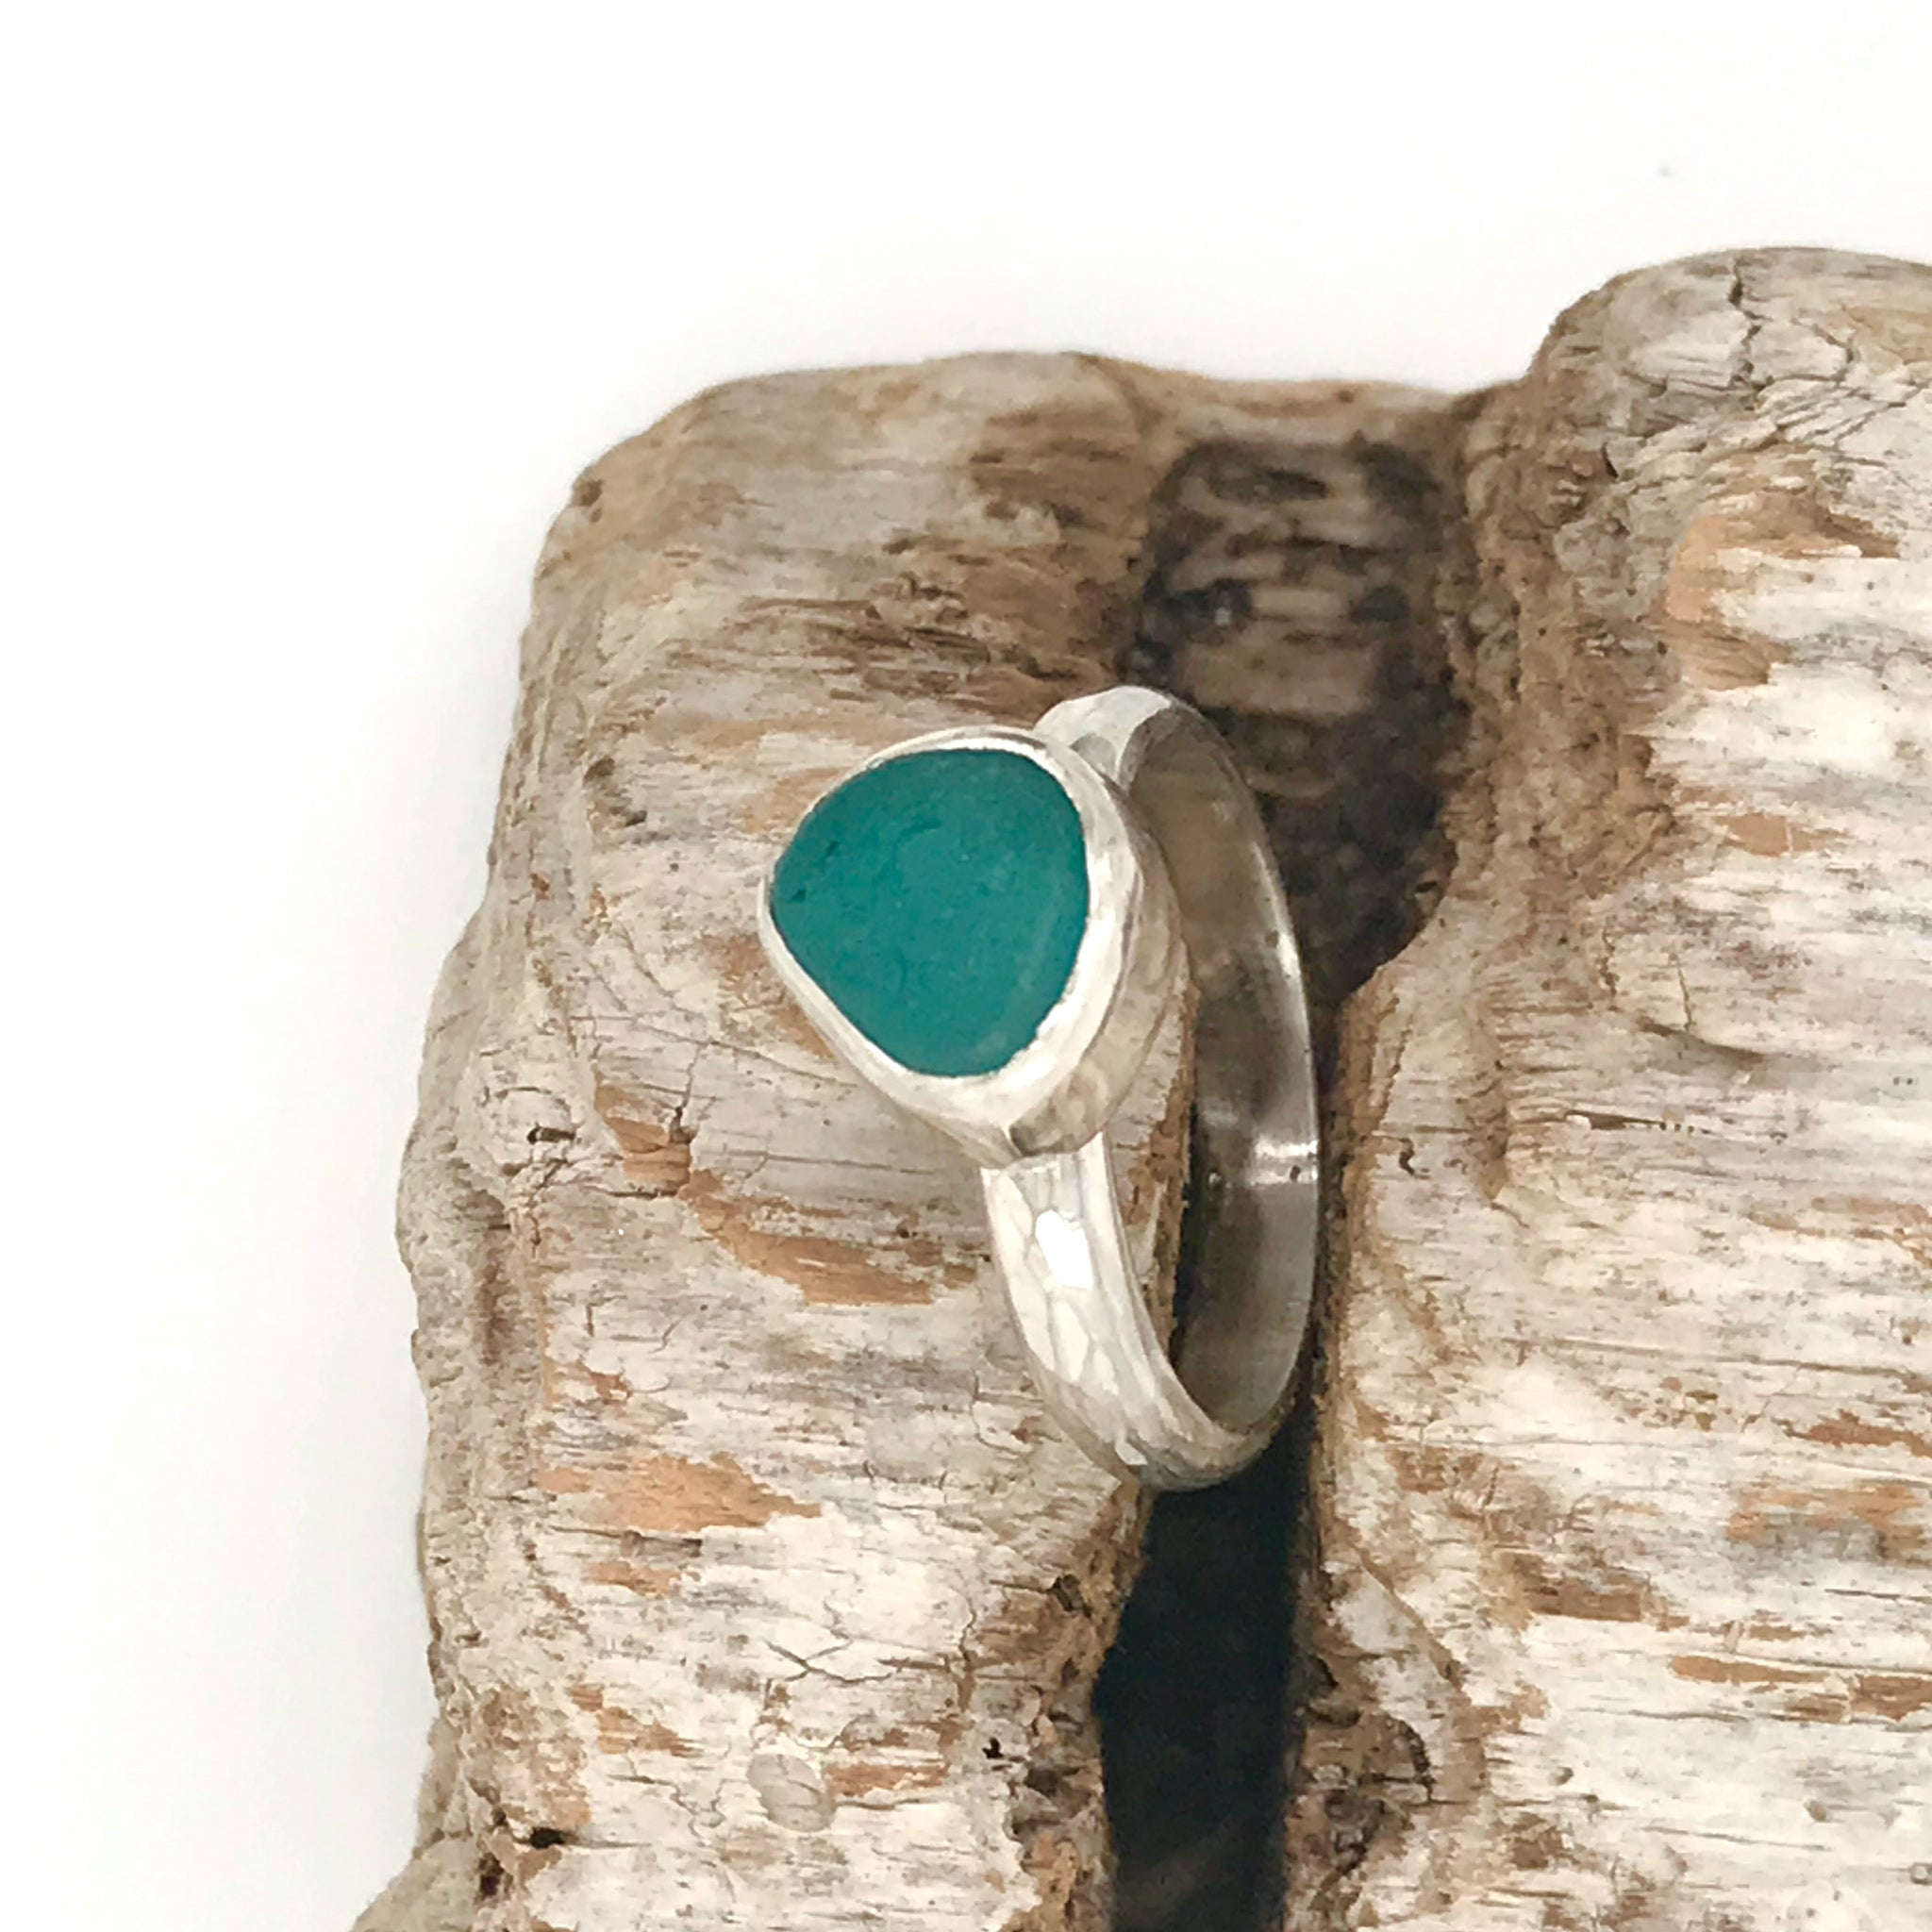 Teal Seaglass Ring – Sterling Silver Shank and Bezel